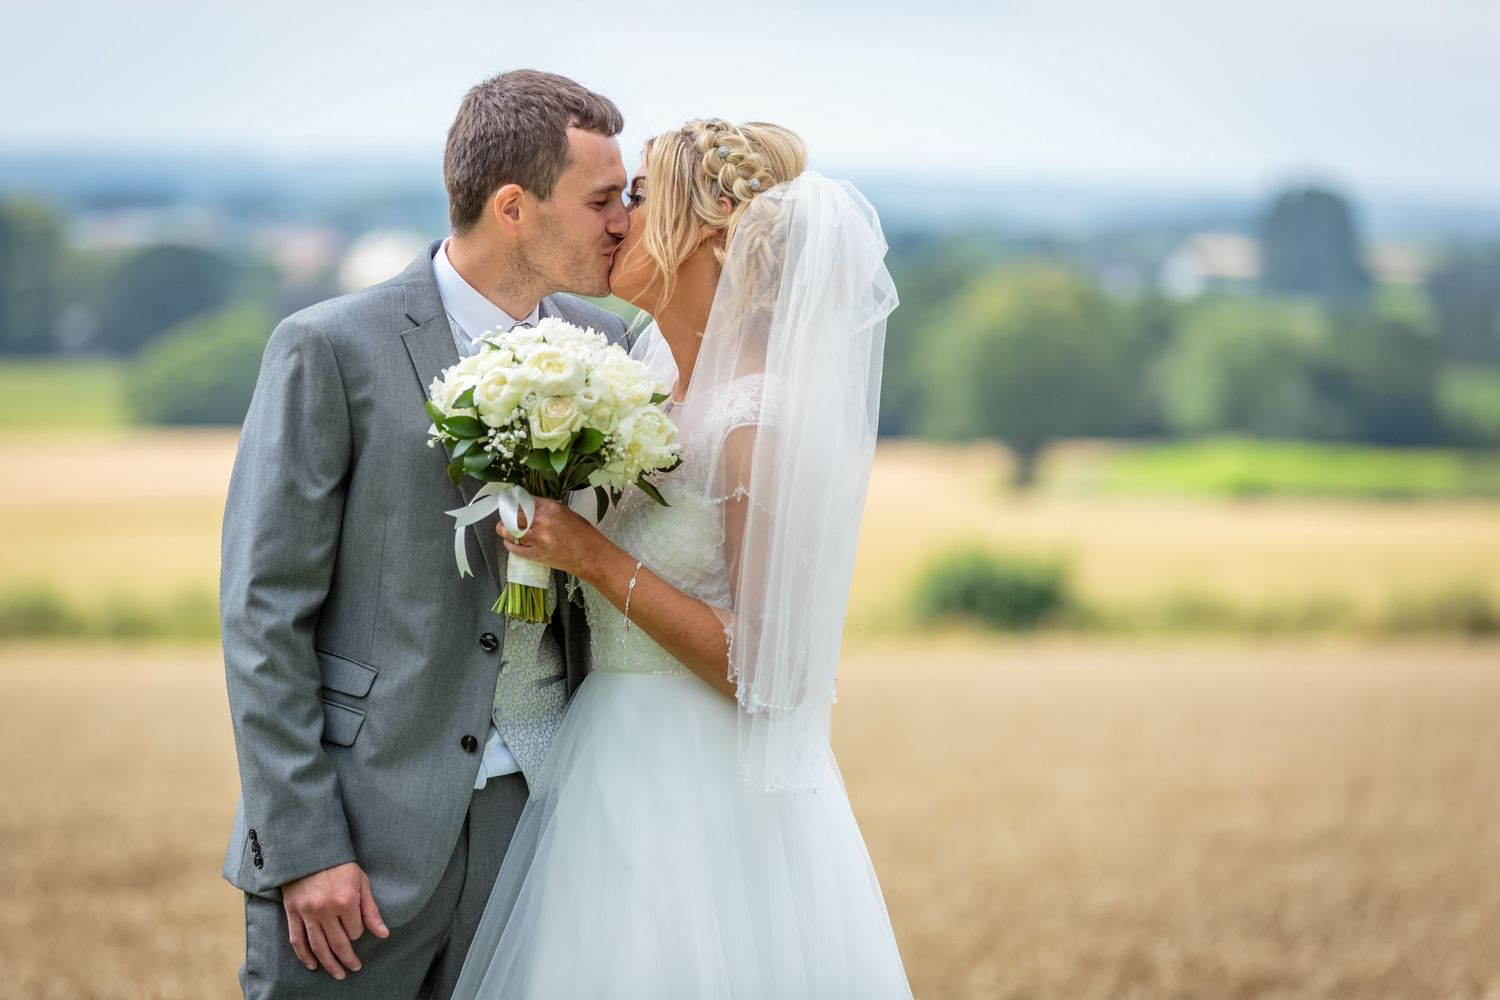 bride holding her bouquet kisses the groom with the countryside as a backdrop